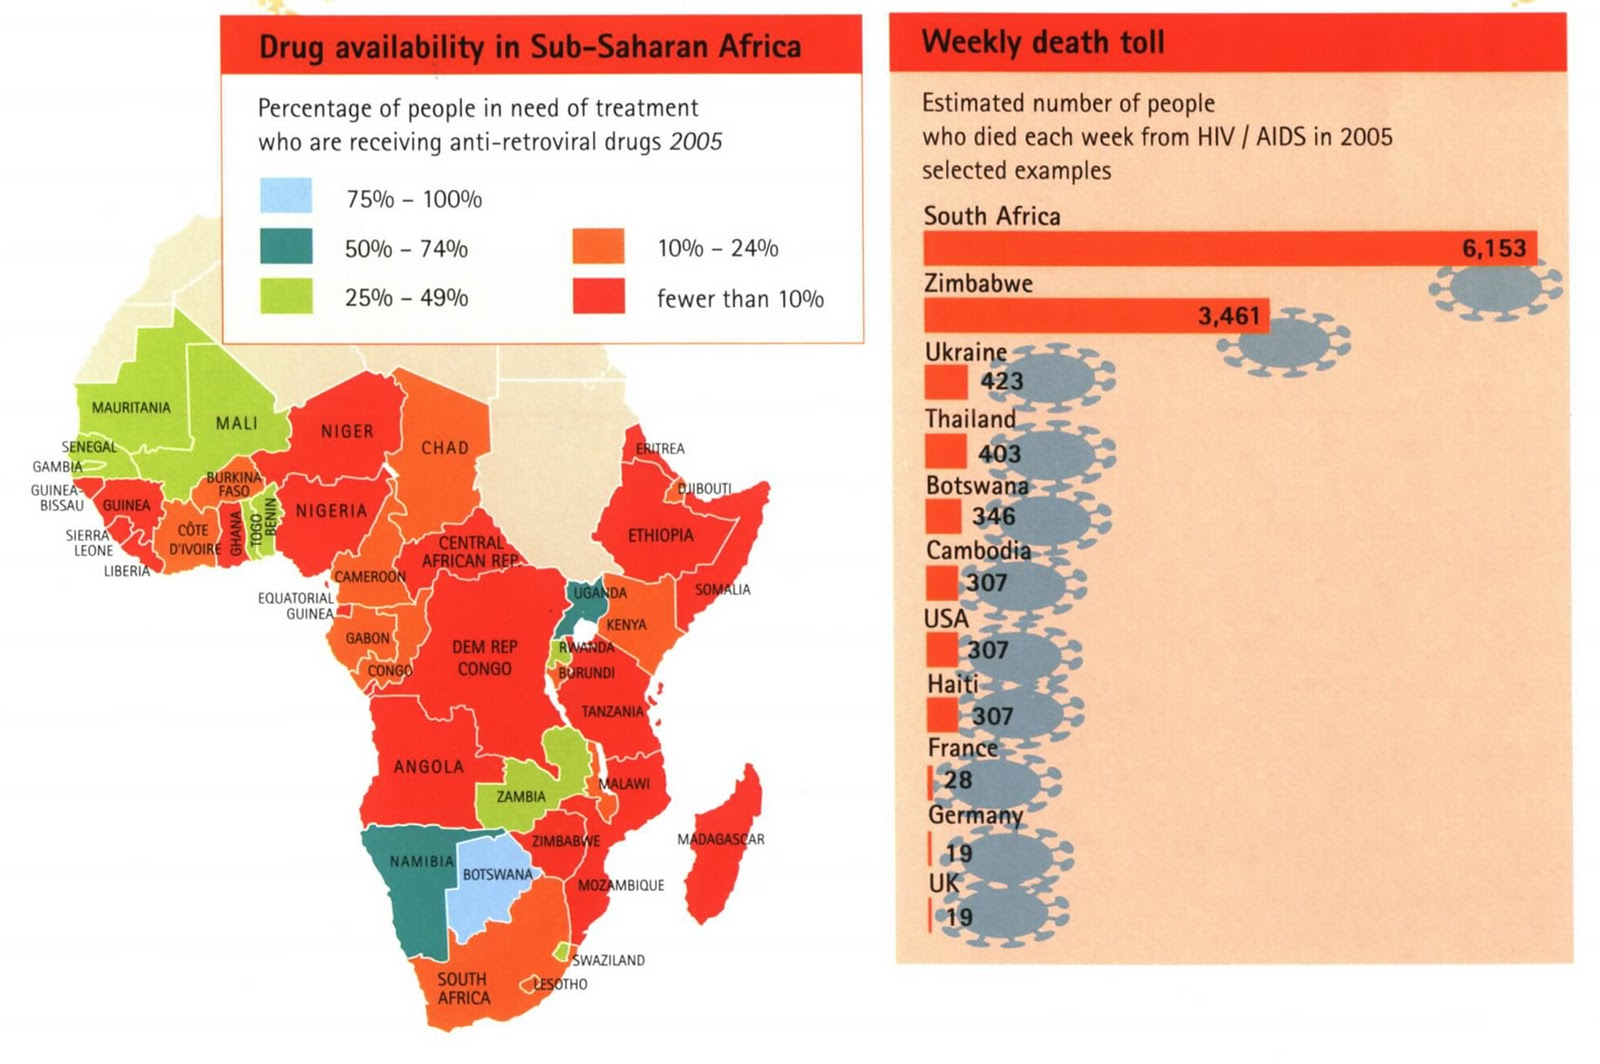 aids the leading killer in sub saharan africa Assessing the causes of death across all regions of the world requires a  hiv/ aids remains the leading cause of death in sub-saharan africa,.